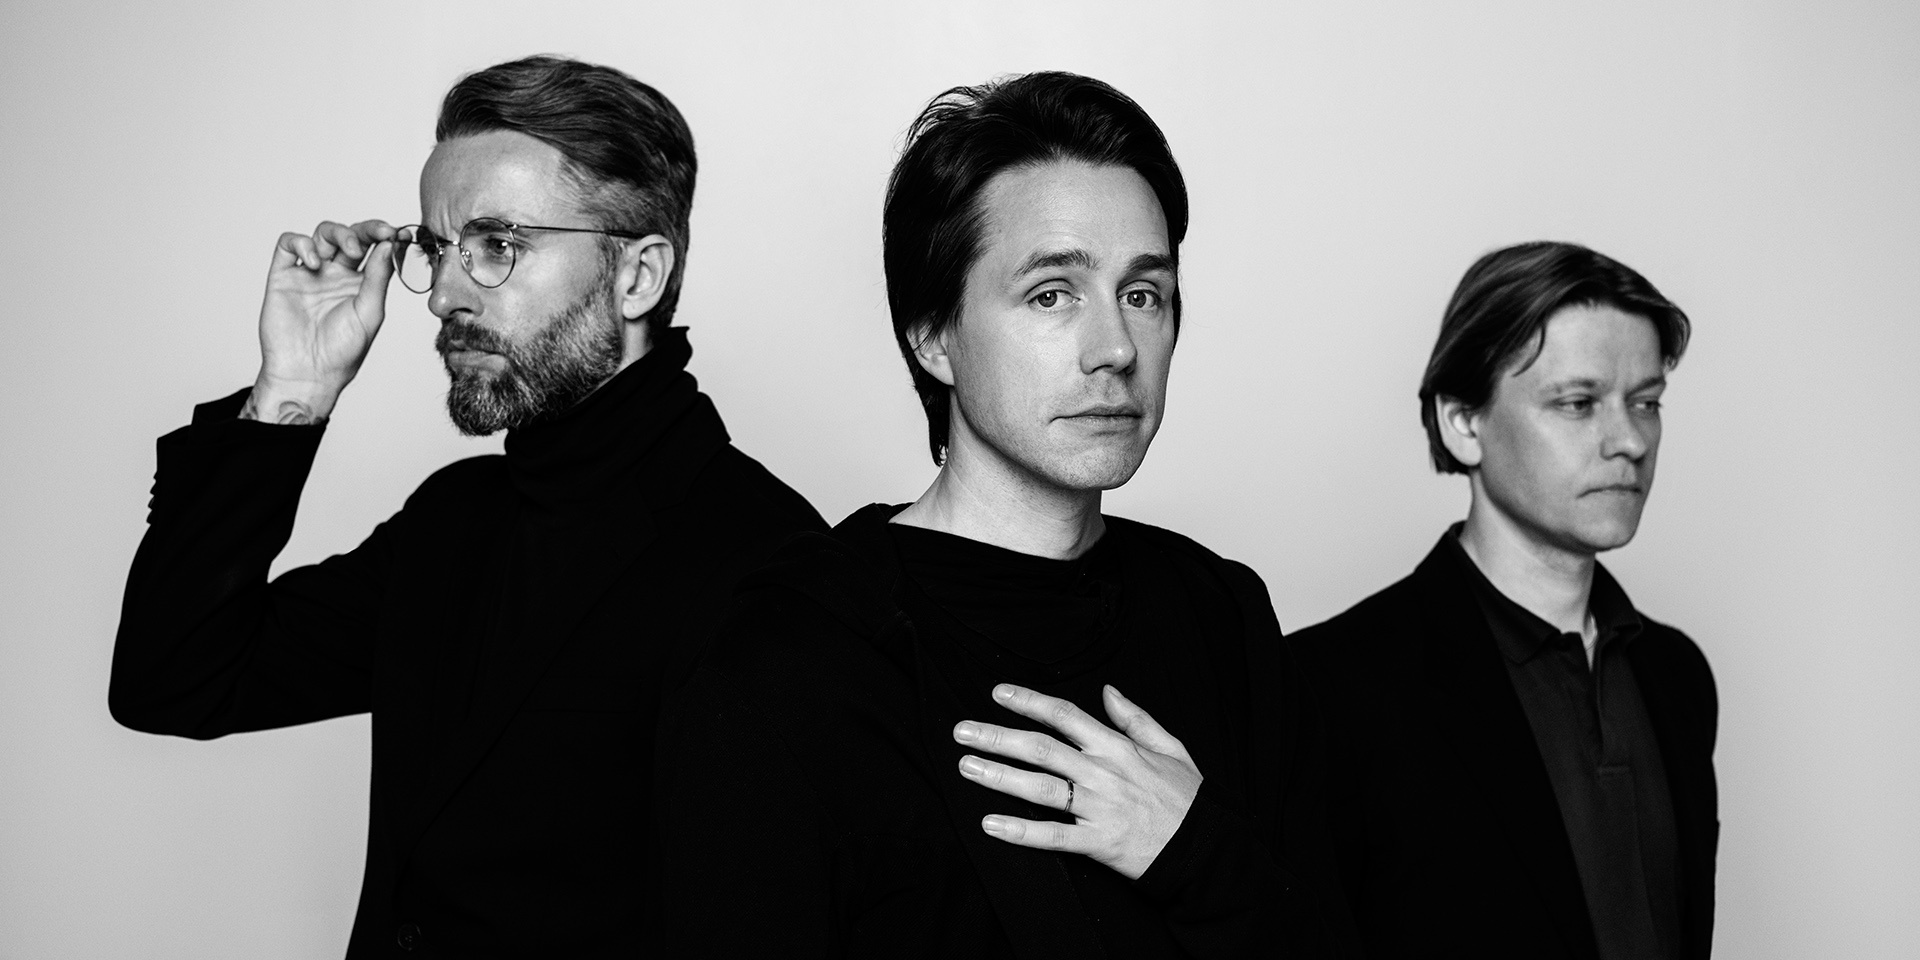 On RRR this week, we speak to Mew about their splendid new album